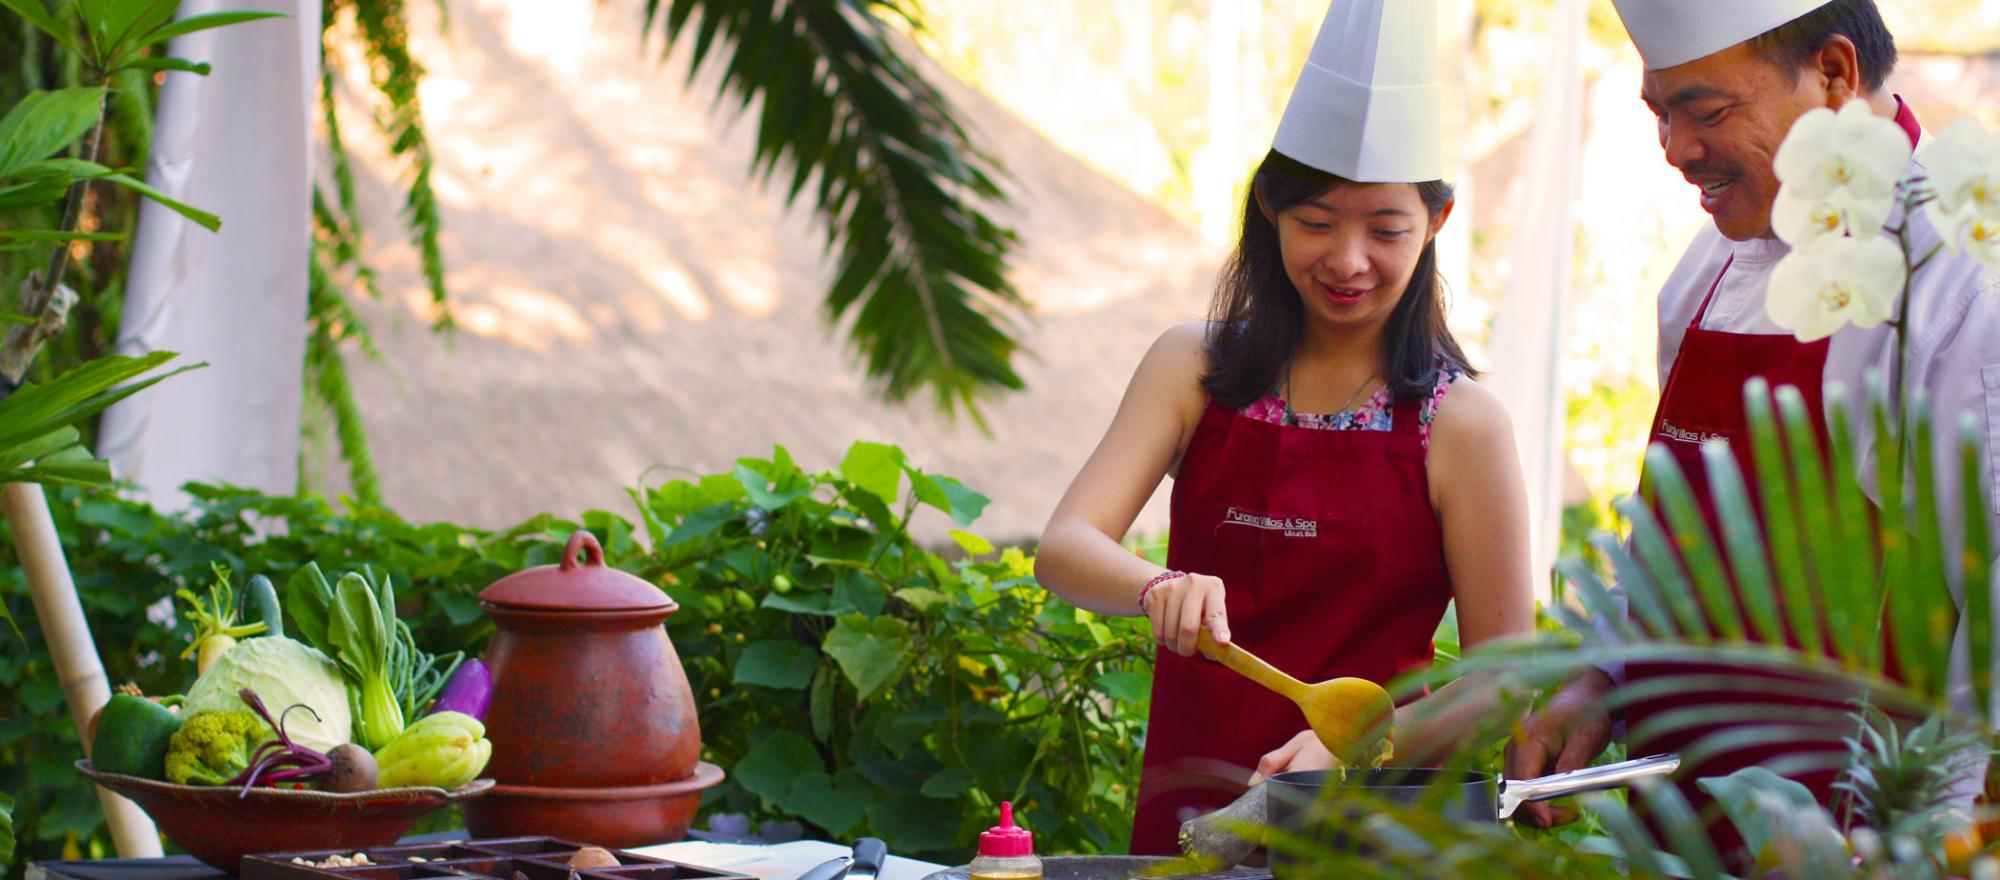 At the Furama Villas & Spa Ubud, Bali executive chef, Wayan Sugata, begins his teaching at the local market. PHOTO: FURAMA VILLAS & SPA UBUD, BALI